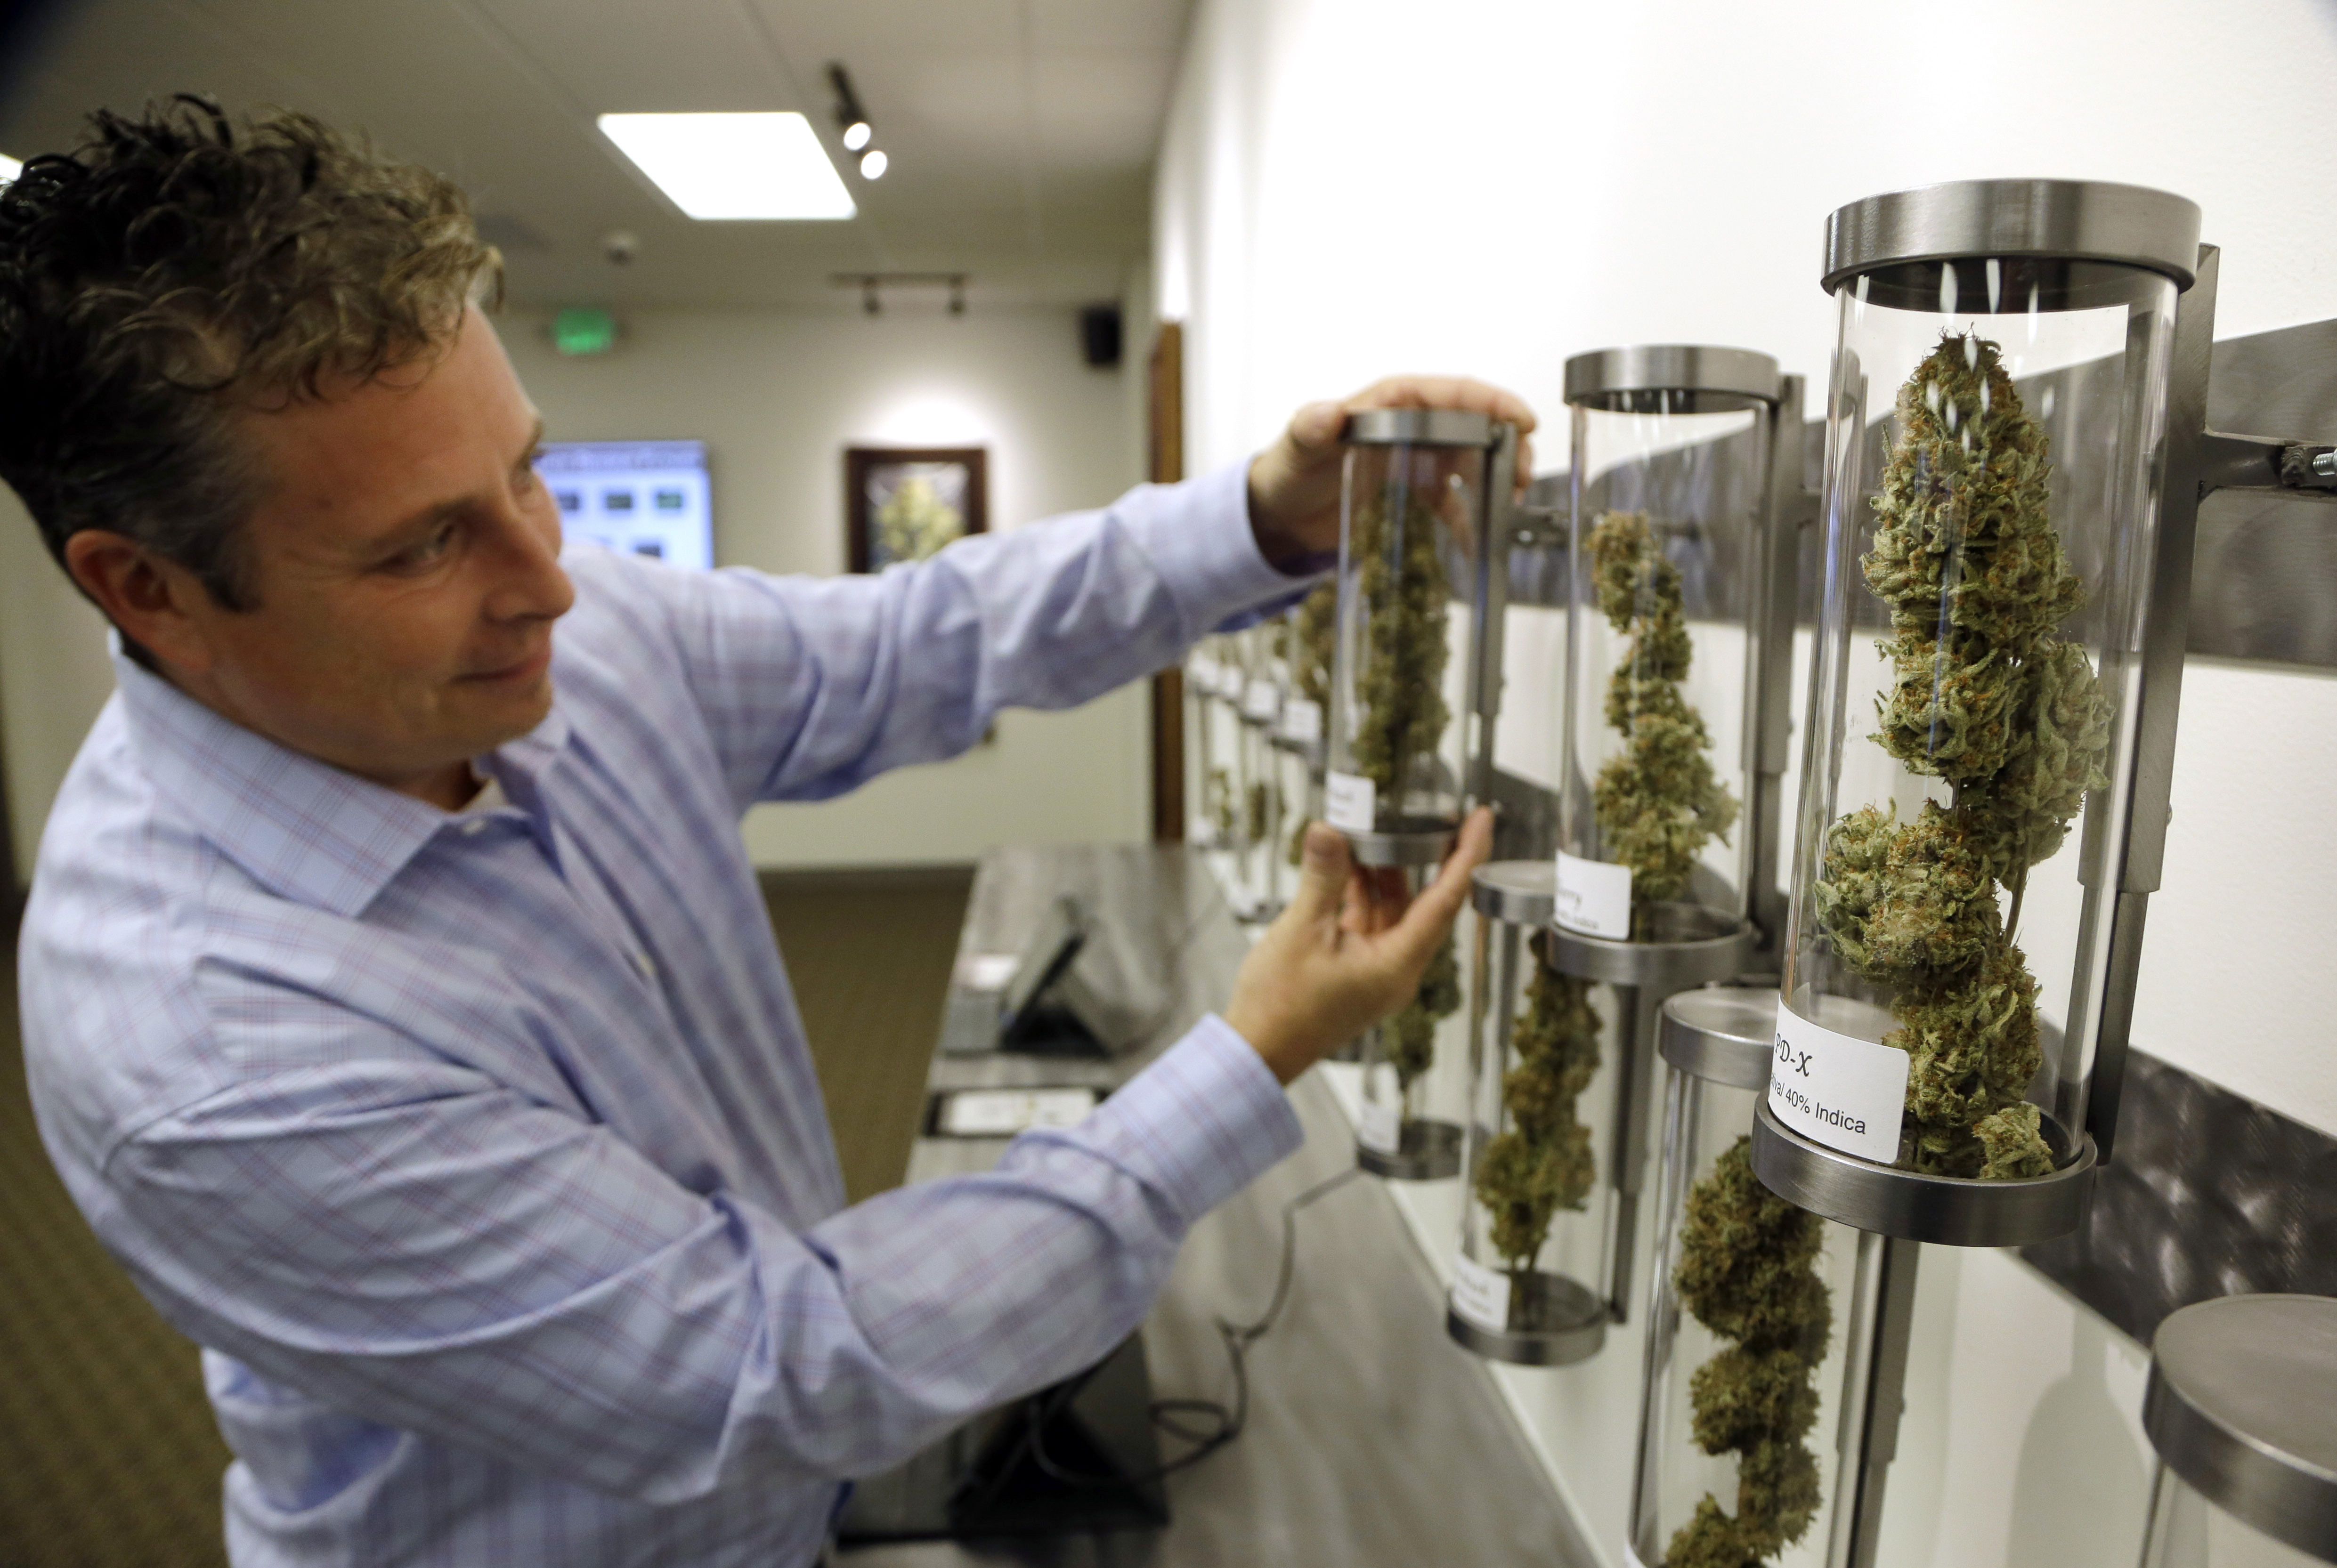 Advice Investing Pot Legalization: Gateway To What? | Us News